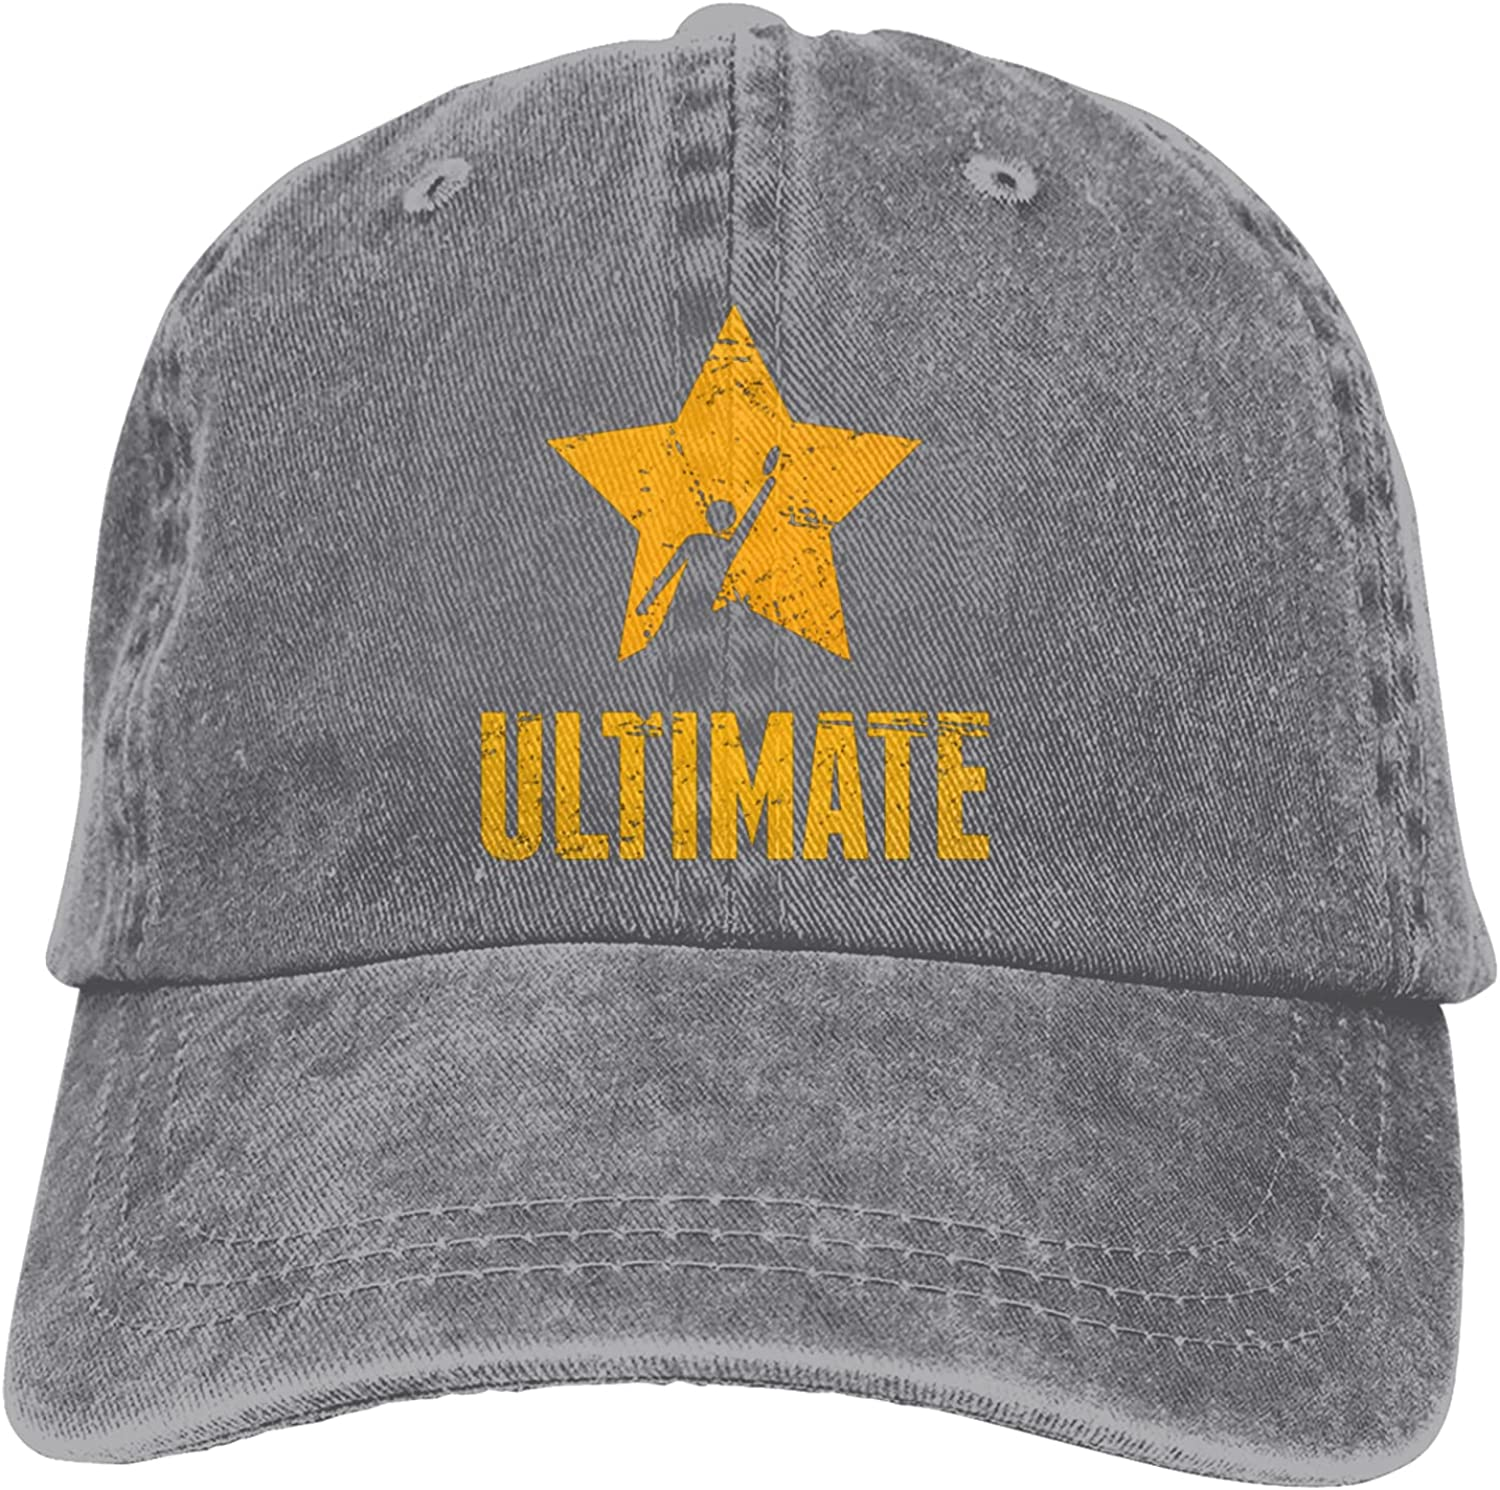 Aimiy Adult Adjustable Baseball Hat Unisex - Washed Super sale Max 43% OFF Twill Cotton